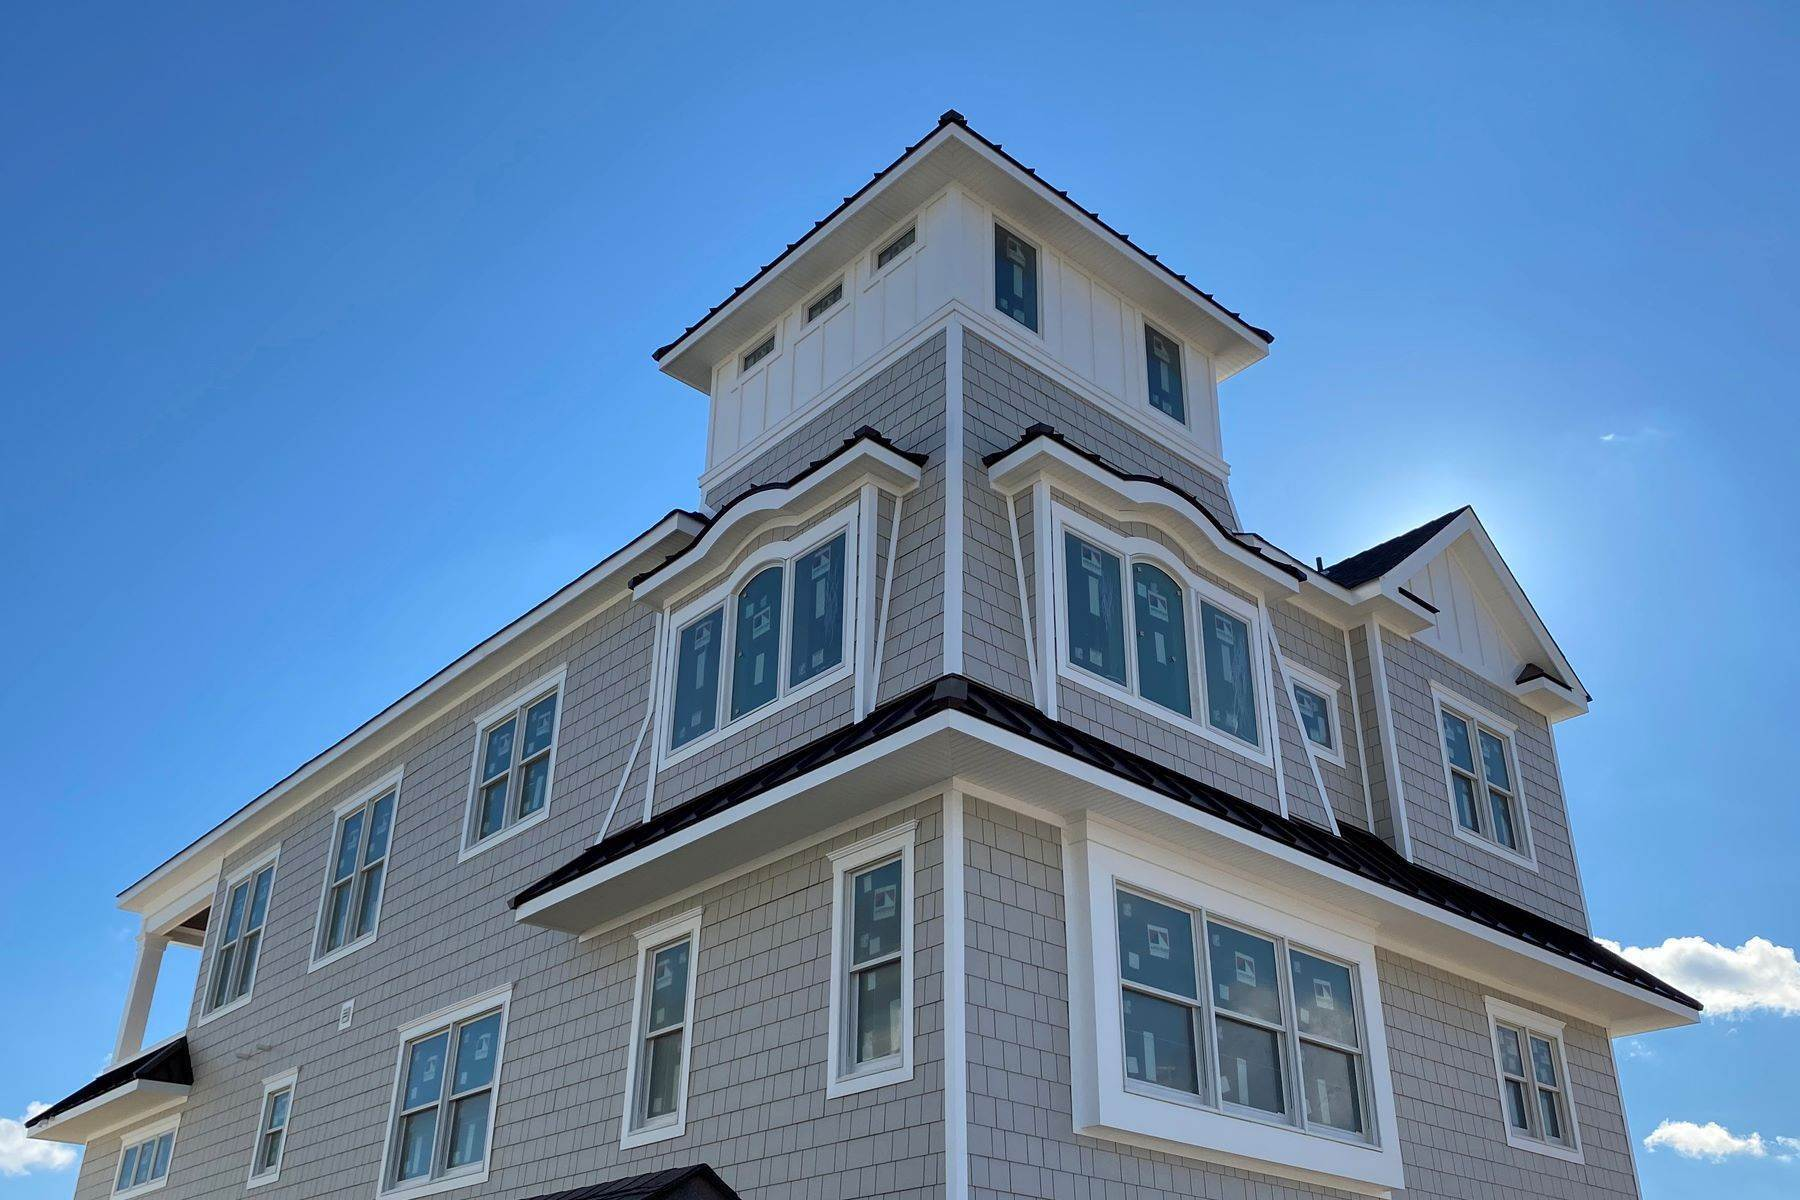 Single Family Homes for Sale at New Construction Spectacularly Designed Oceanfront Home 3574 Ocean Terrace Normandy Beach, New Jersey 08739 United States